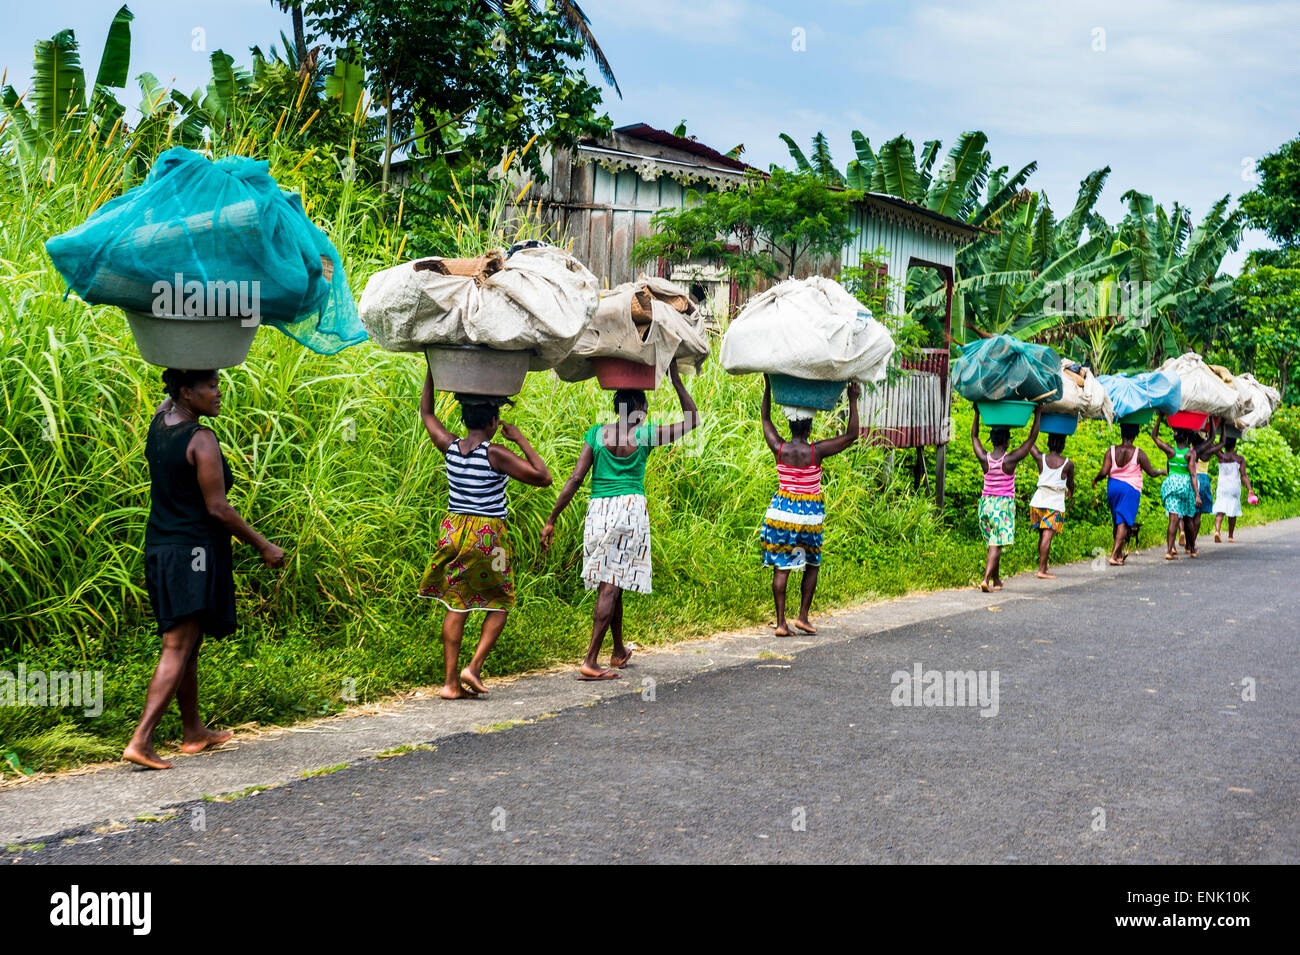 Women carrying giant baskets on their heads, northern Sao Tome, Sao Tome and Principe, Atlantic Ocean, Africa - Stock Image